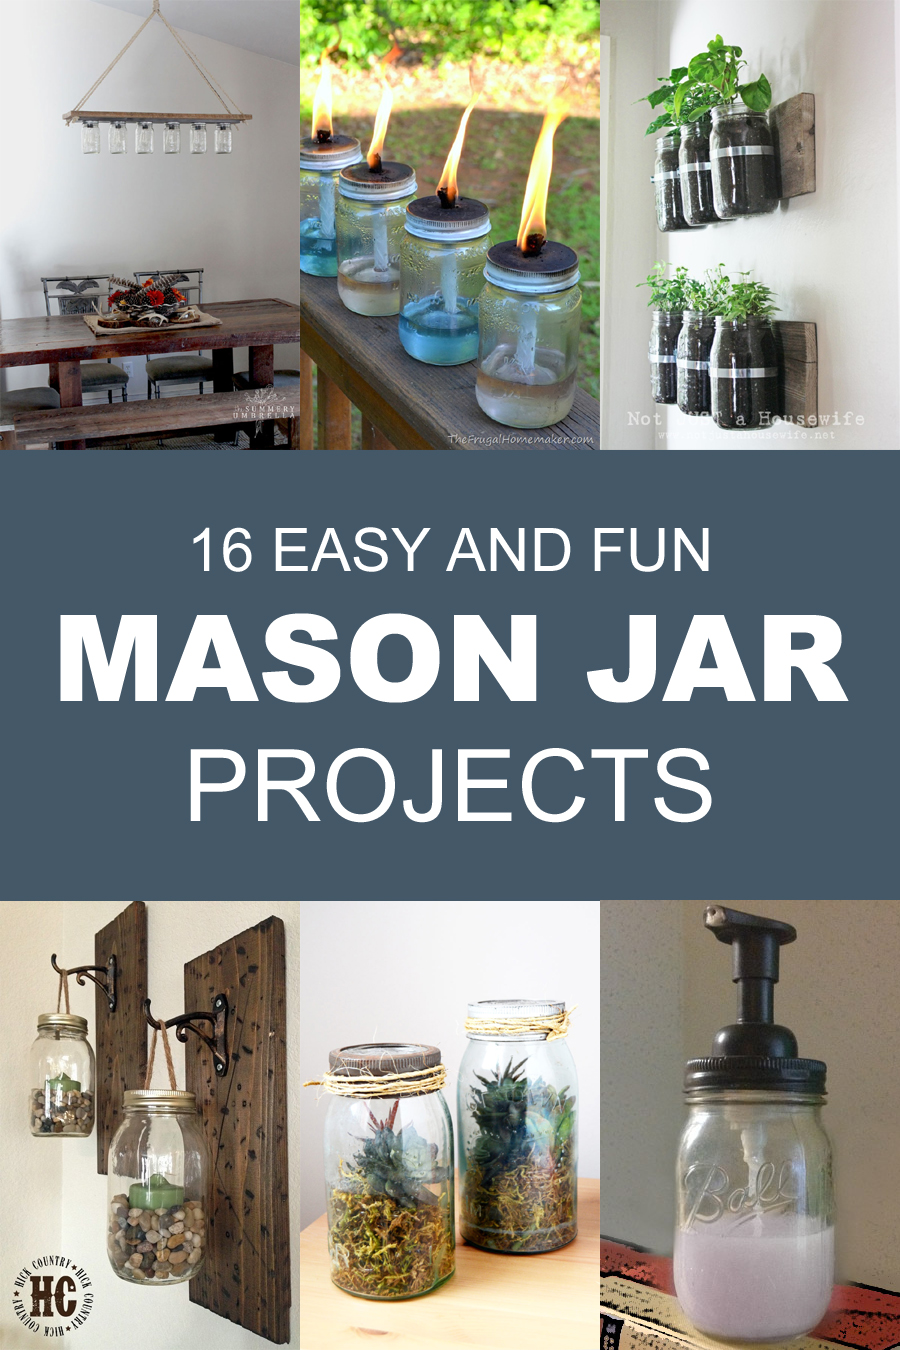 16 Easy And Fun Mason Jar Projects